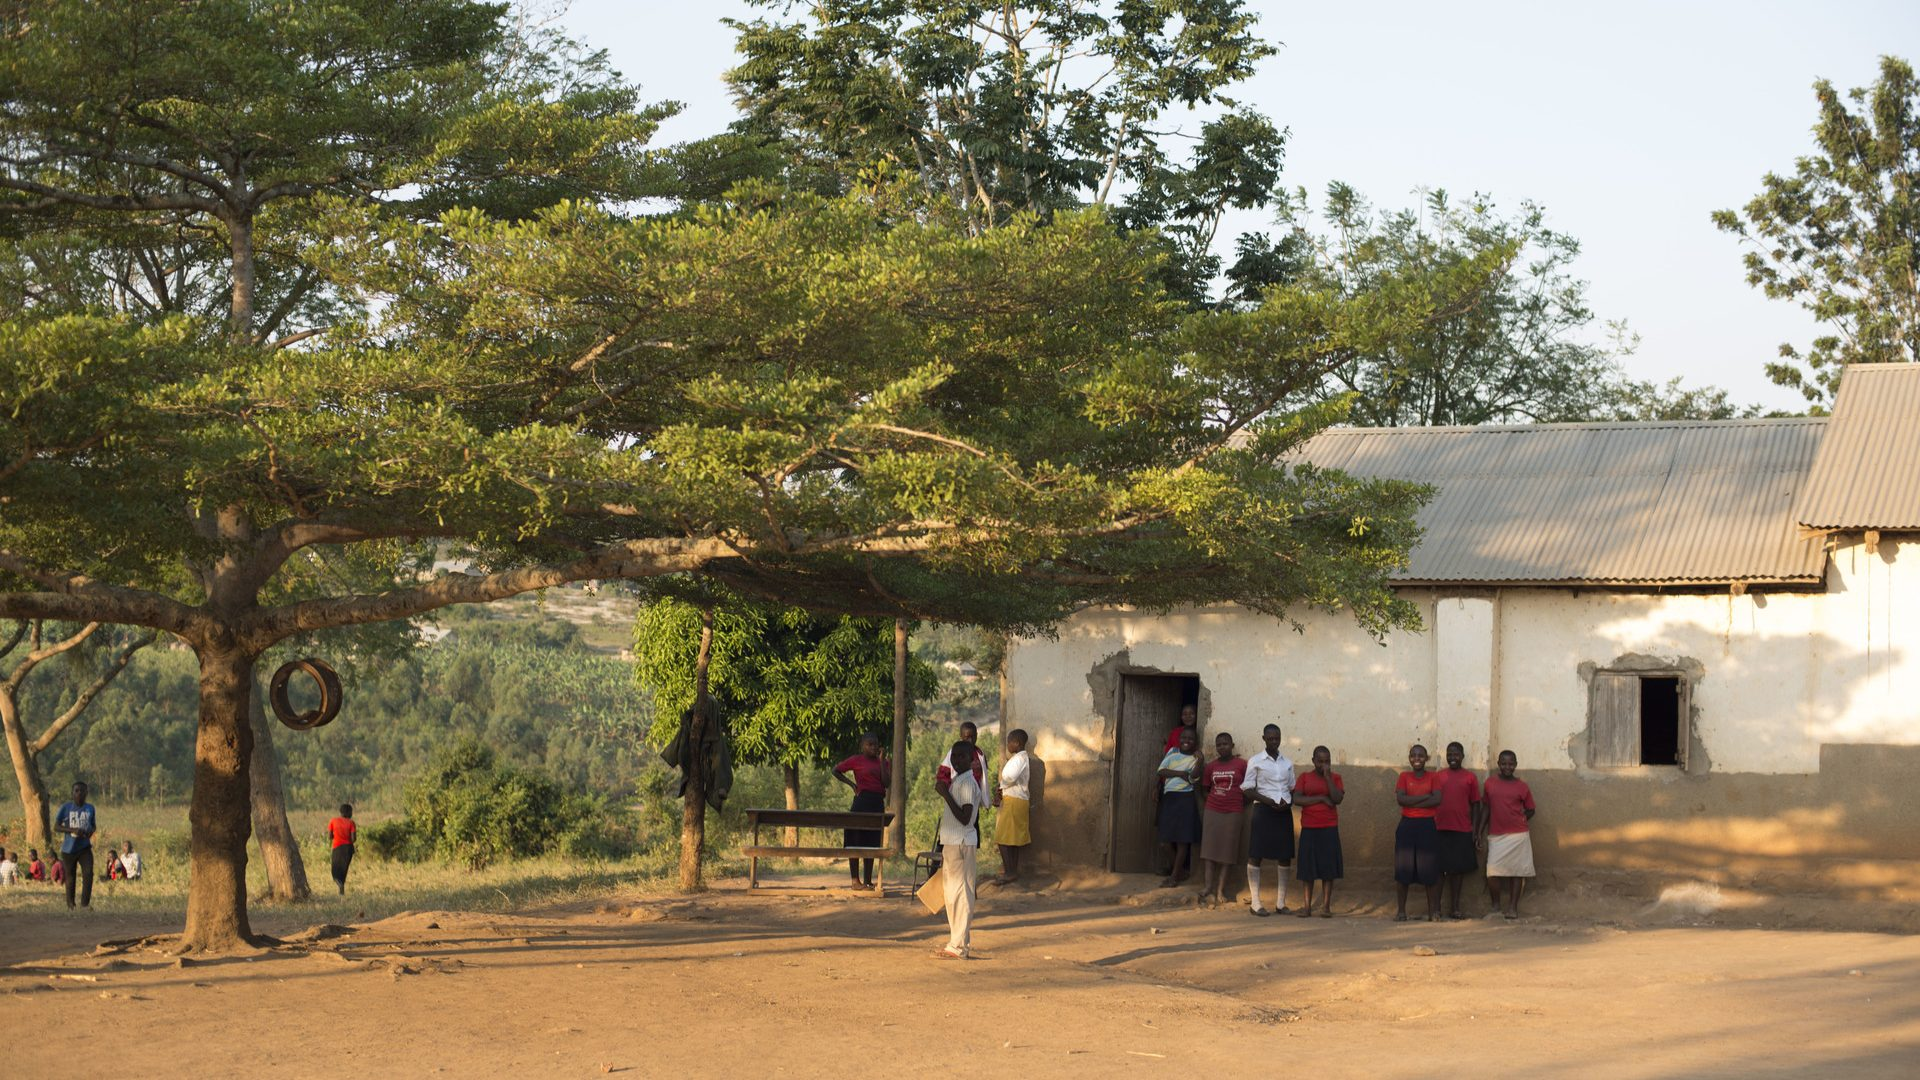 Secondary school